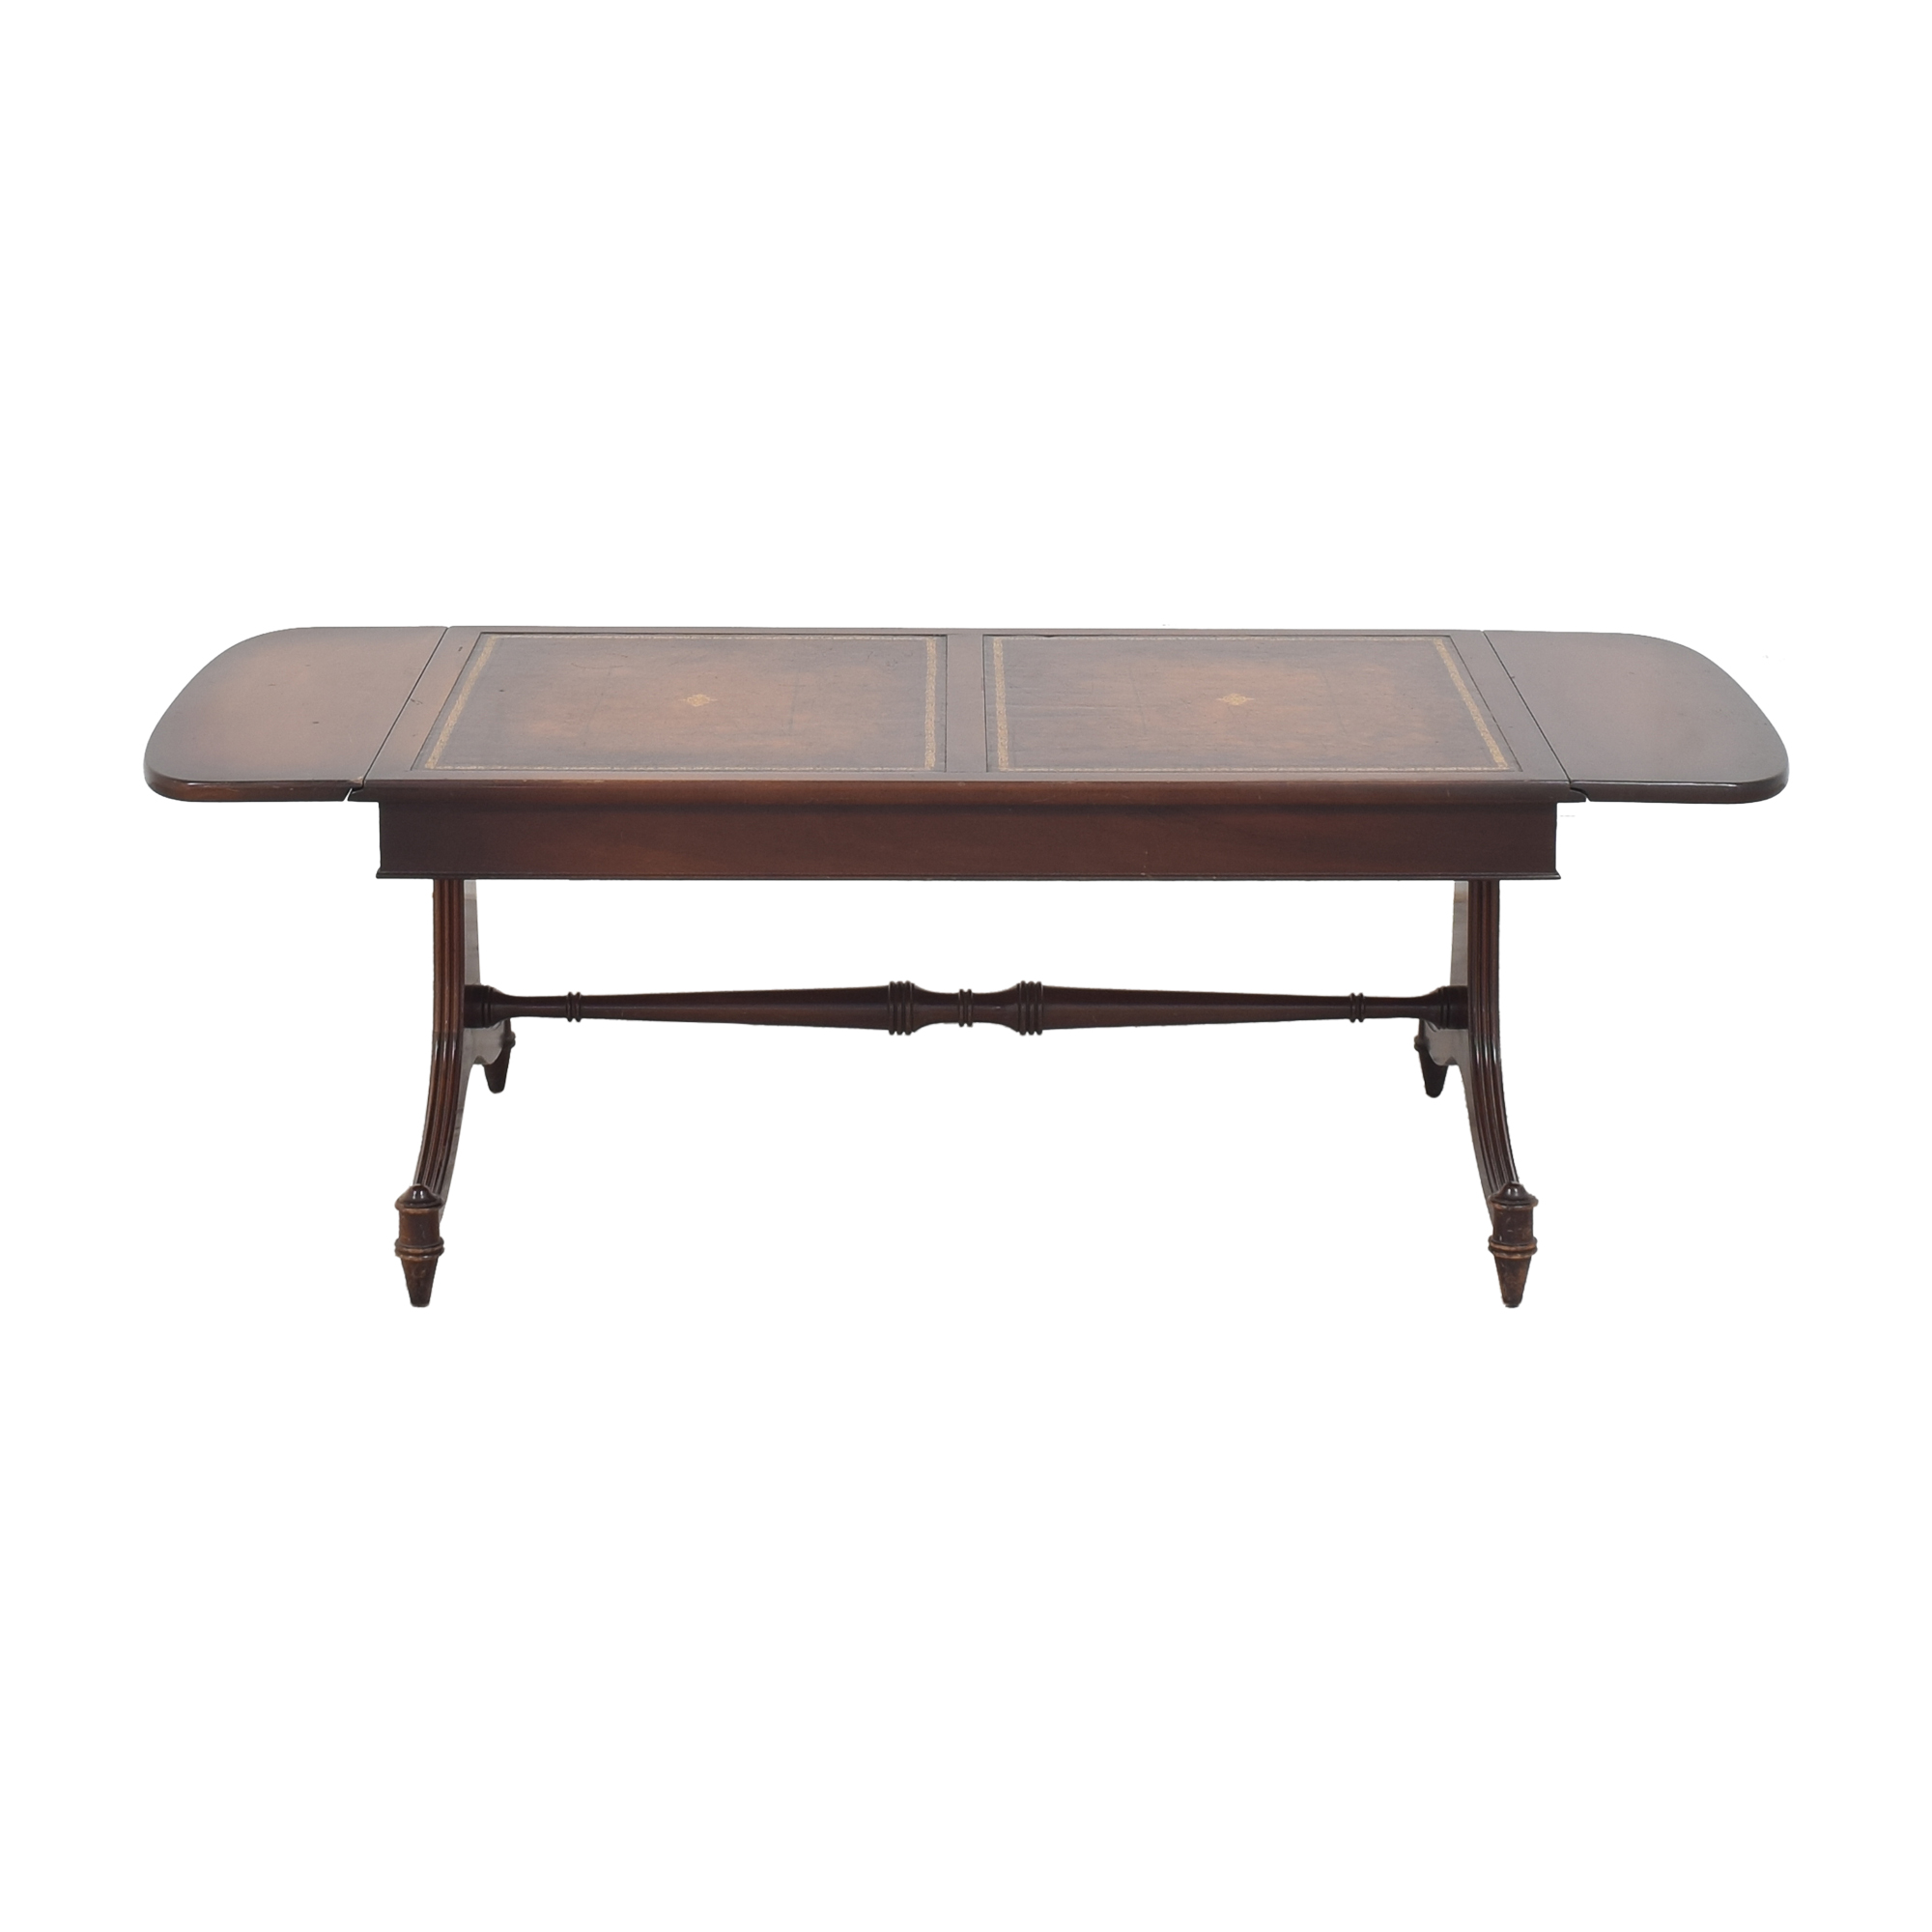 Gordon's Furniture Gordon's Furniture Drop Leaf Coffee Table Coffee Tables